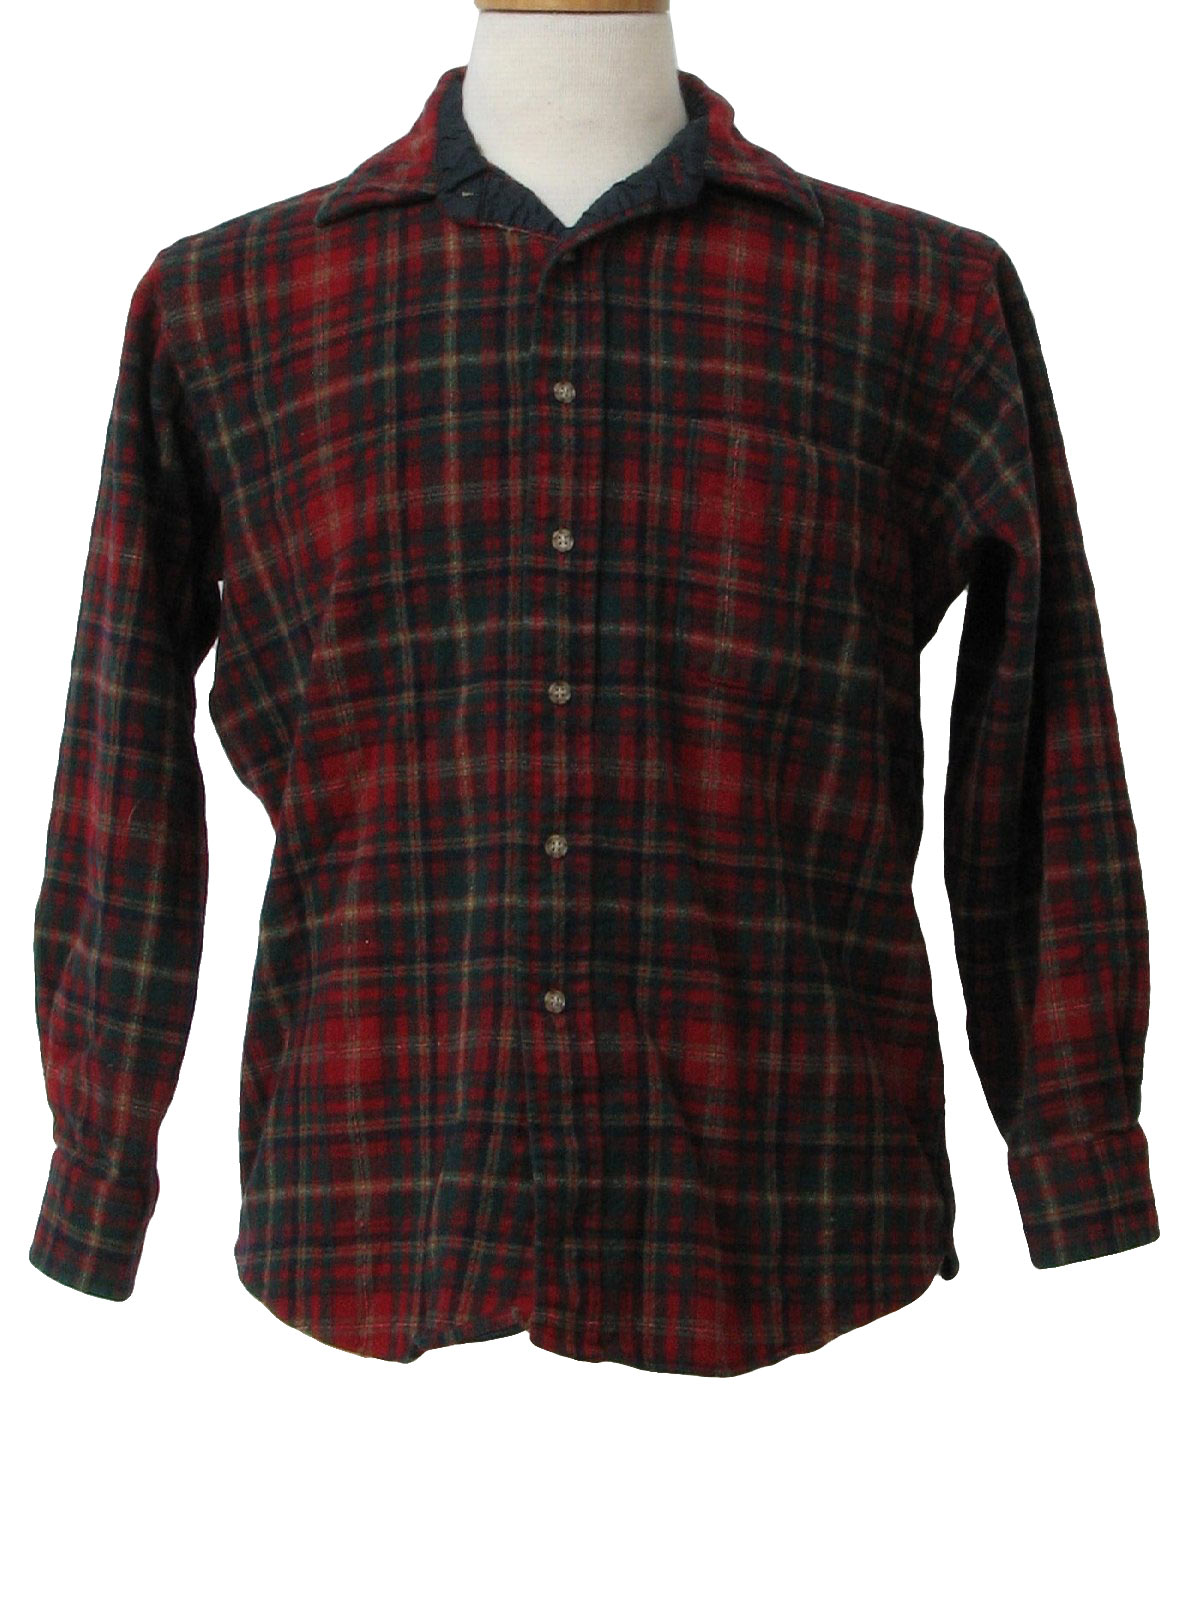 Men's Pendleton Apparel. There are 35 products available. Sort By: Go. Pendleton Men's Canyon Ombre Plaid Shirt $ Original Pendleton Men's Western Wear Wool Canyon Shirt $ Original Price $ Sale $ (20% Coupon) $ 22% Total Savings.